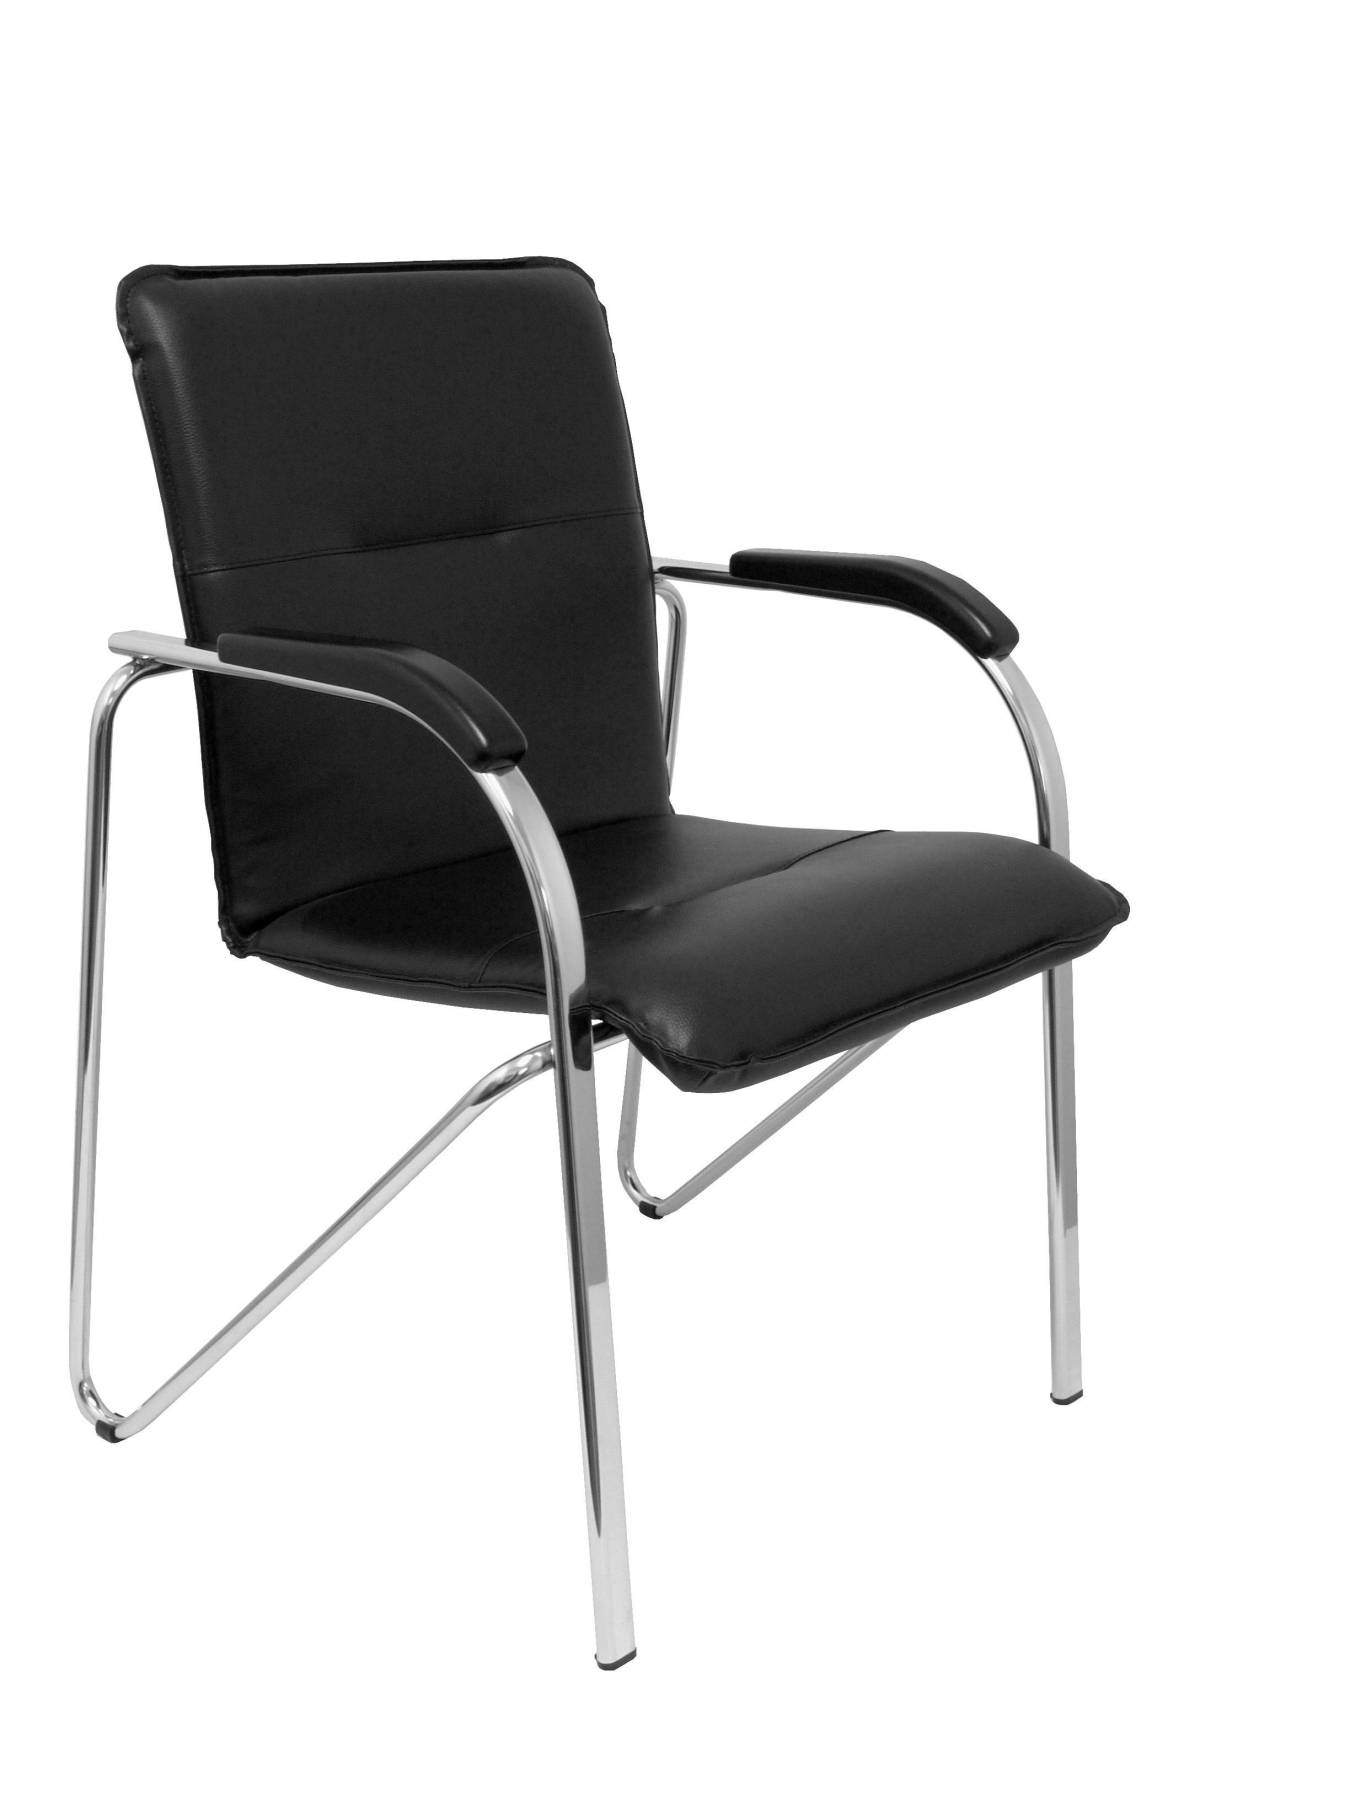 Pack Of 2 Chairs Confident Of 4 Legs, With Arms And Structure Chrome Seat And Back Upholstered In Fabric Similp